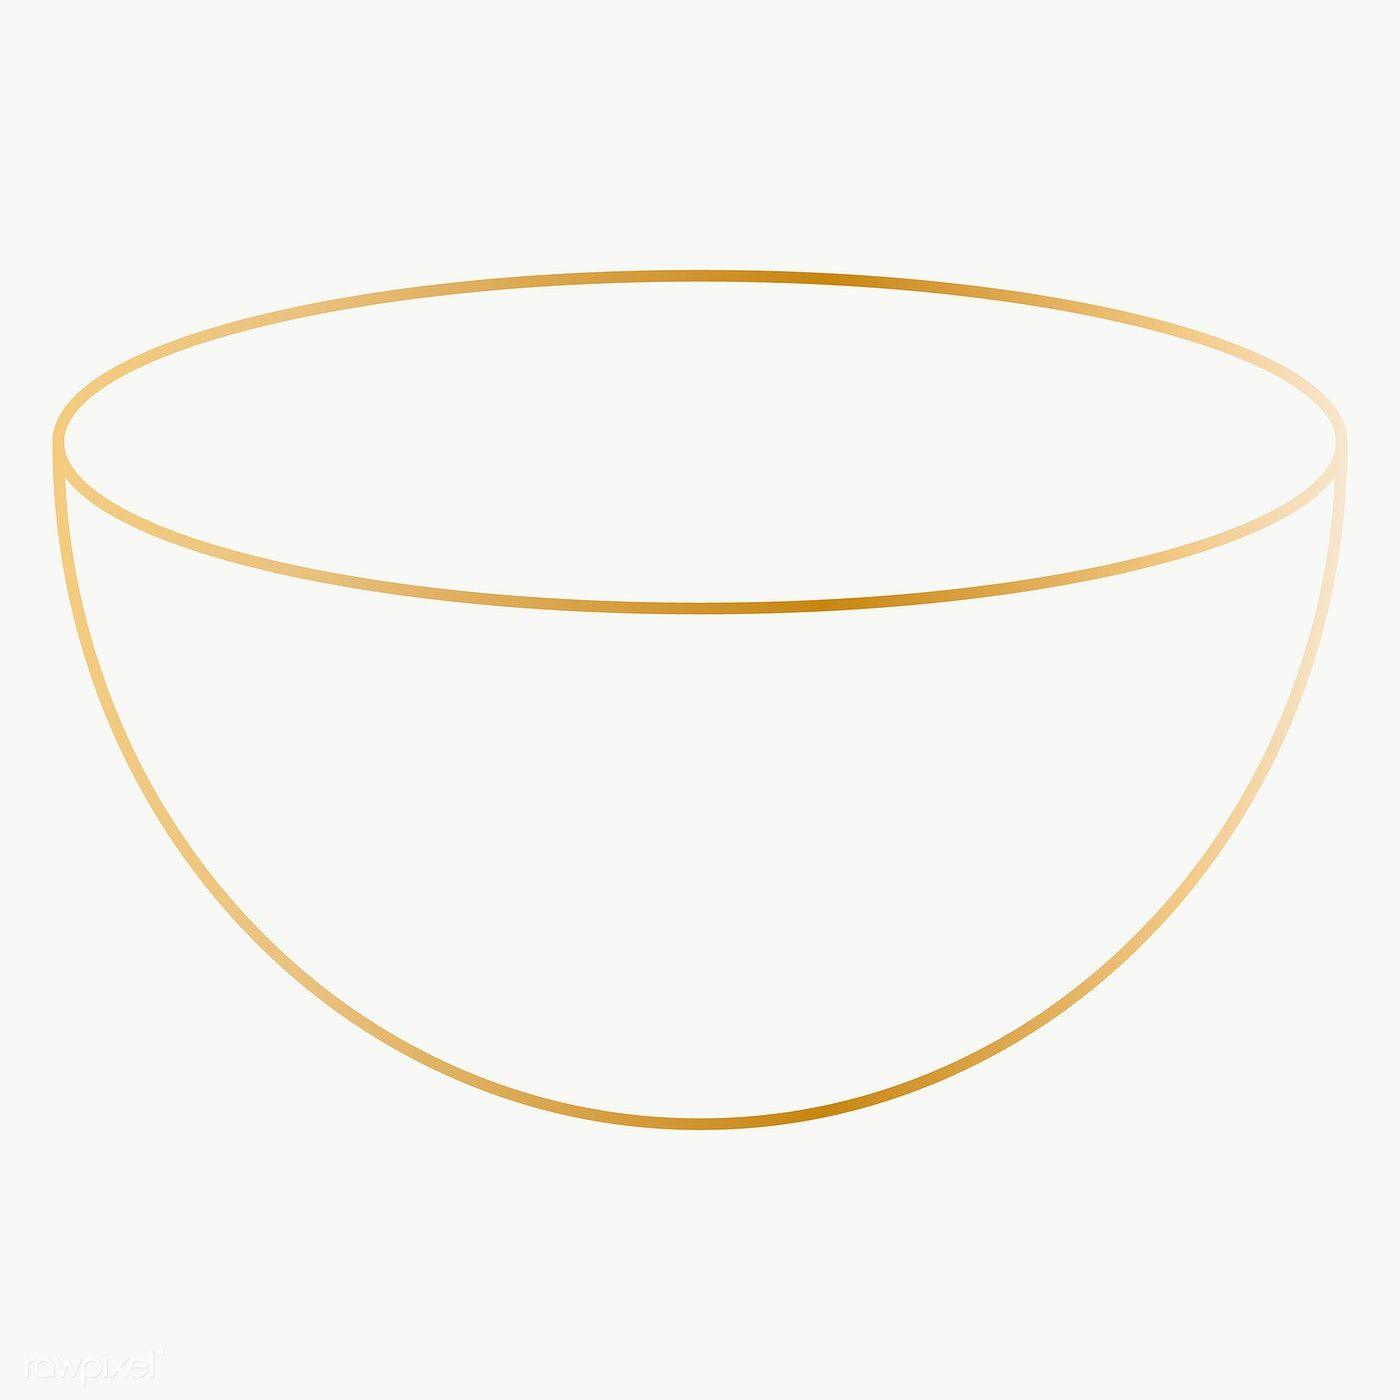 Minimal Gold Half Sphere Shape Transparent Png Free Image By Rawpixel Com Katie Vector Background Pattern Shapes Free Frames